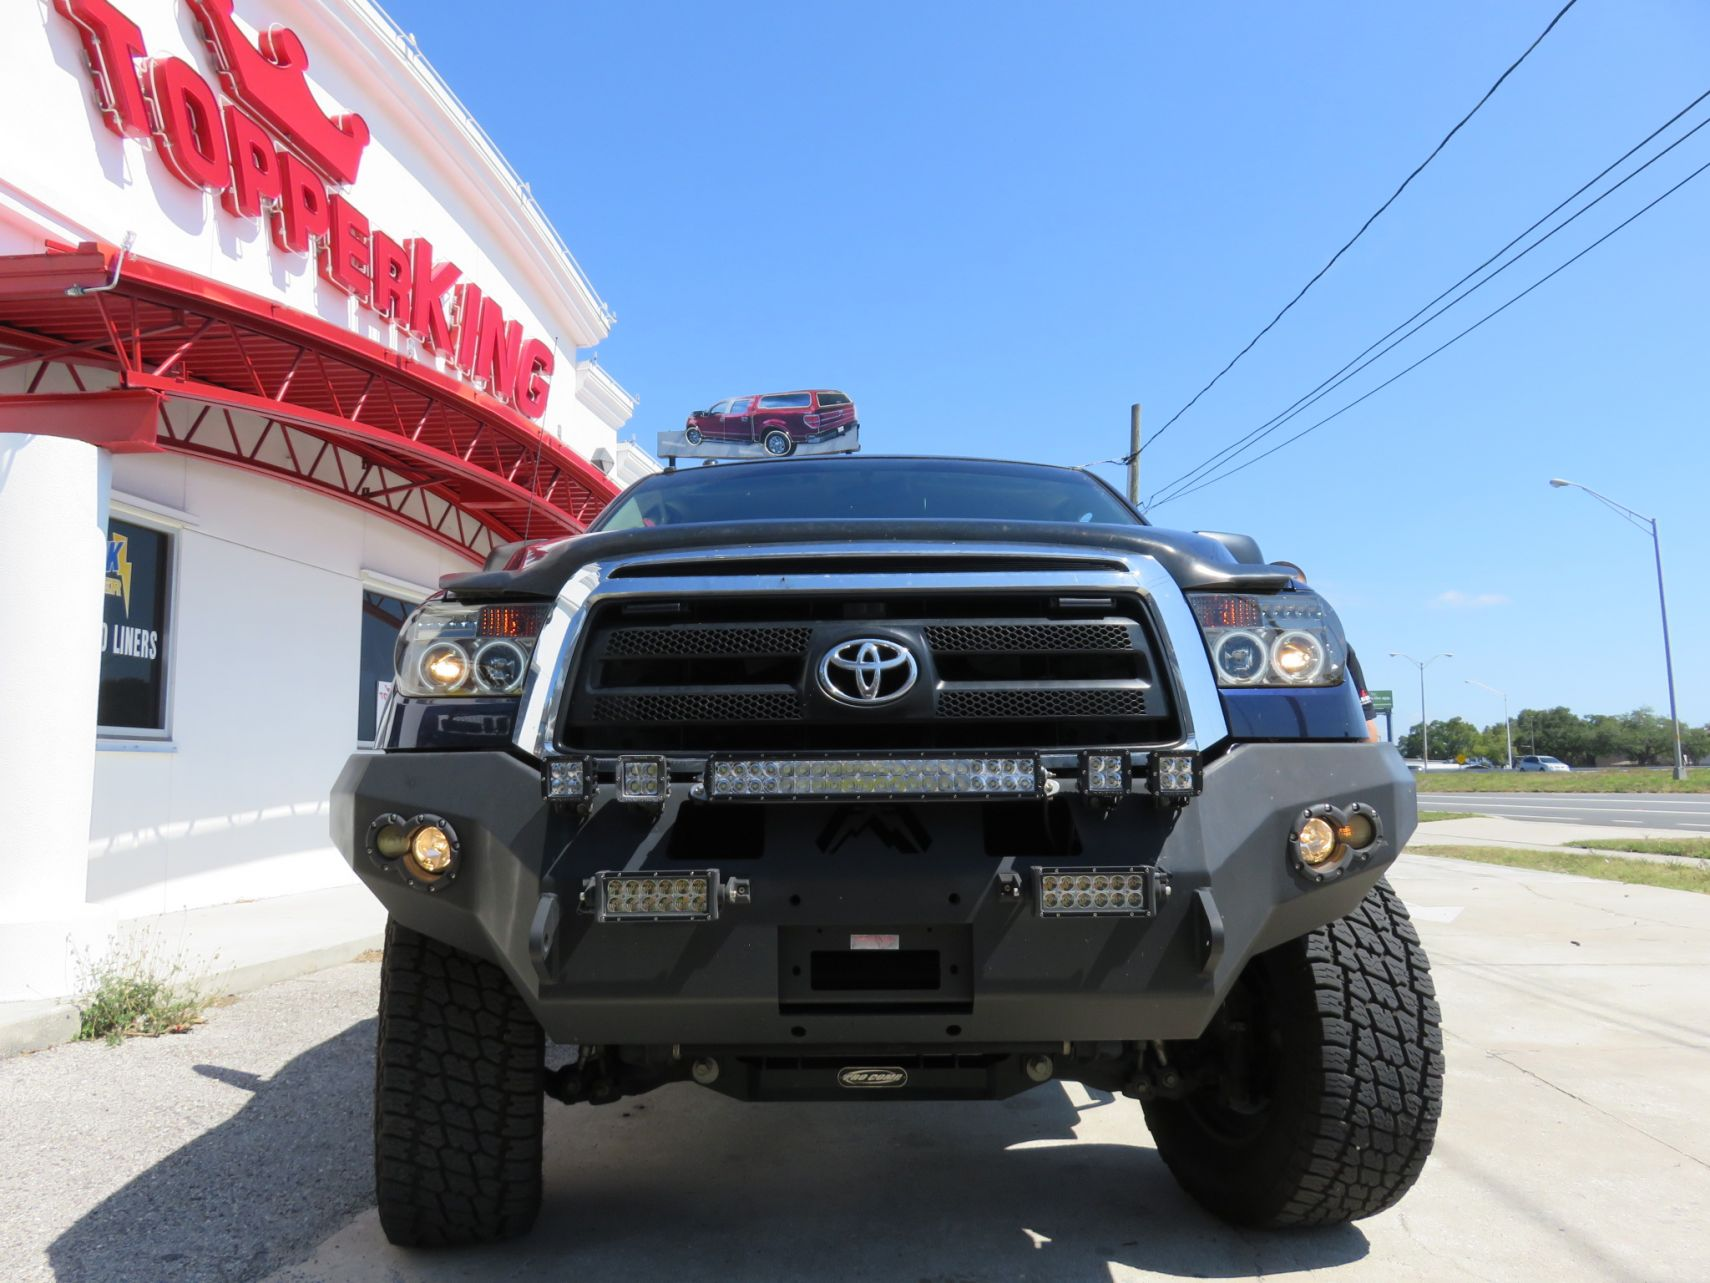 2013 Toyota Tundra with Ranch SportWrap, Lighted Bumper, Side Steps. Call TopperKING Brandon 813-689-2449 or Clearwater FL 727-530-9066.